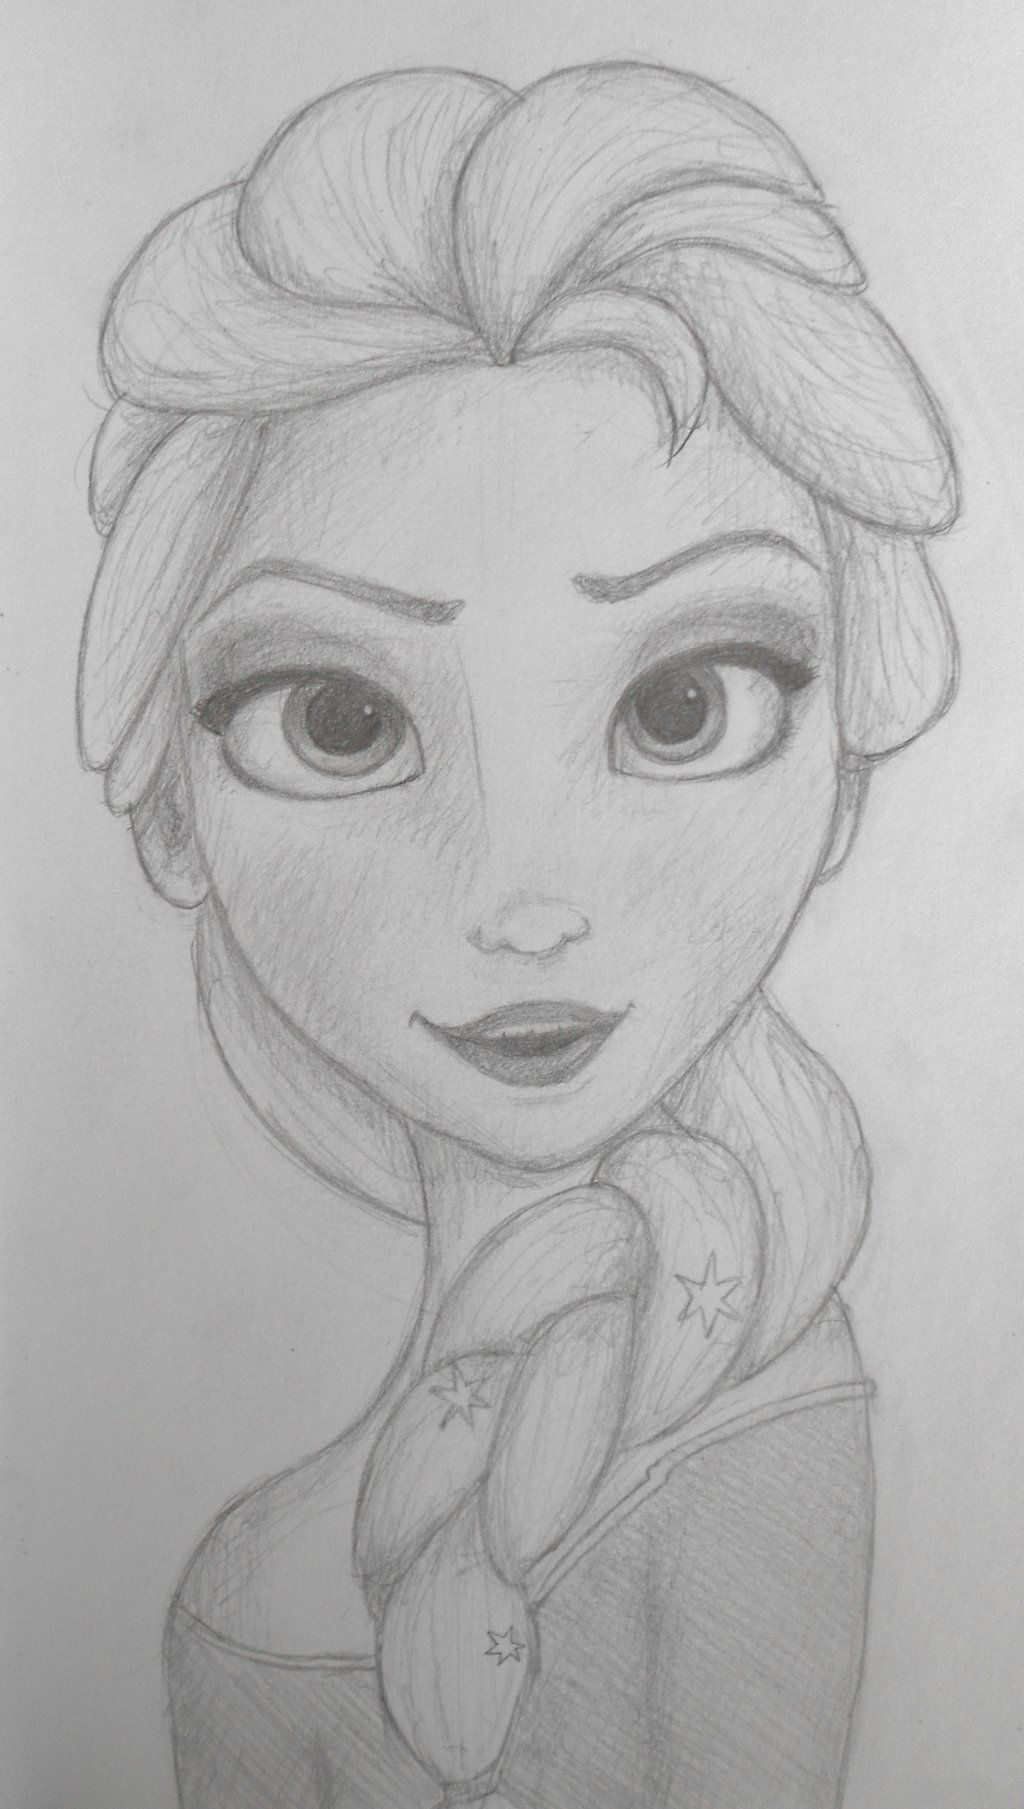 Frozen Elsa Drawing Pencil Easy Elsa Pencil Drawing Fresh Anna